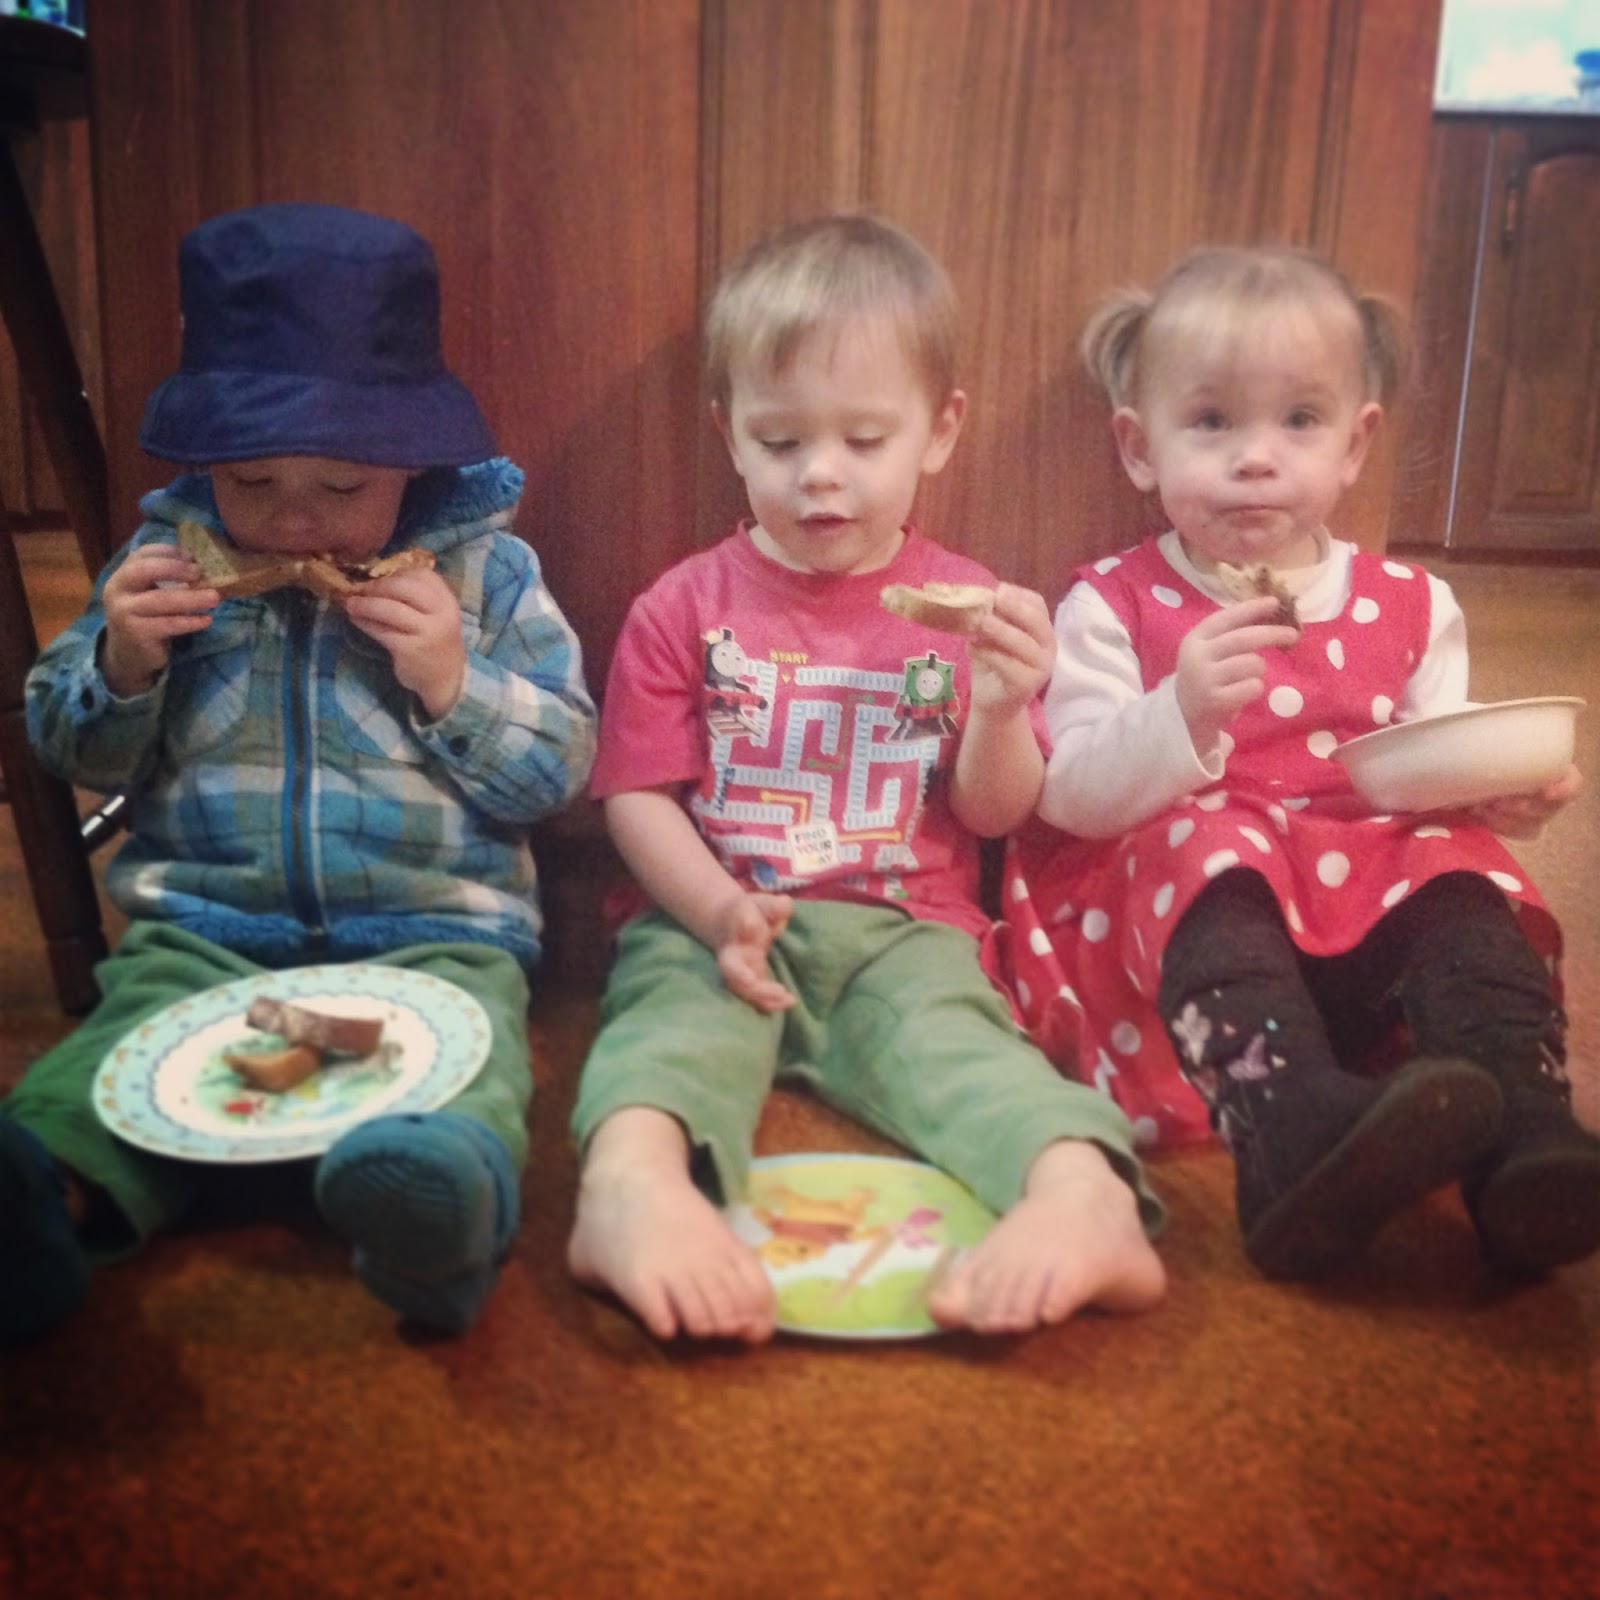 Two year old triplets routine at lunch